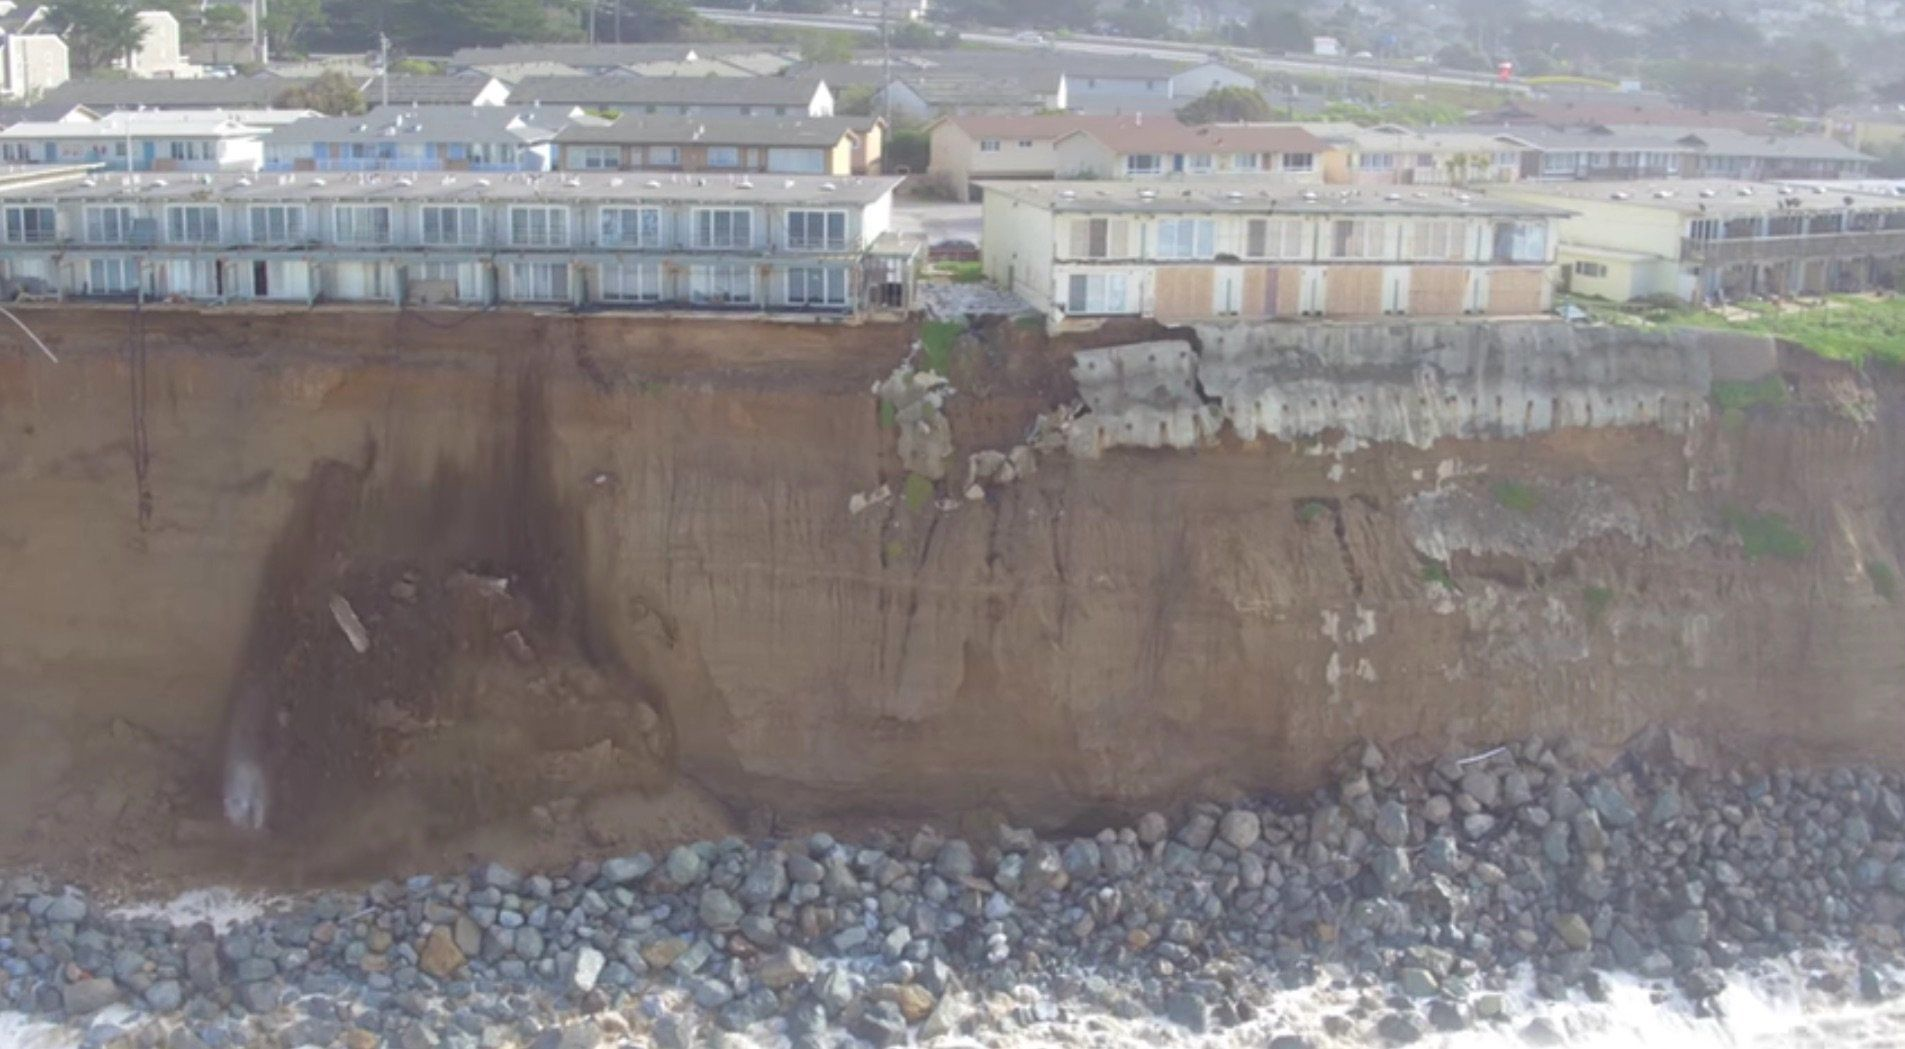 Apartments on the brink of collapse in Pacifica.